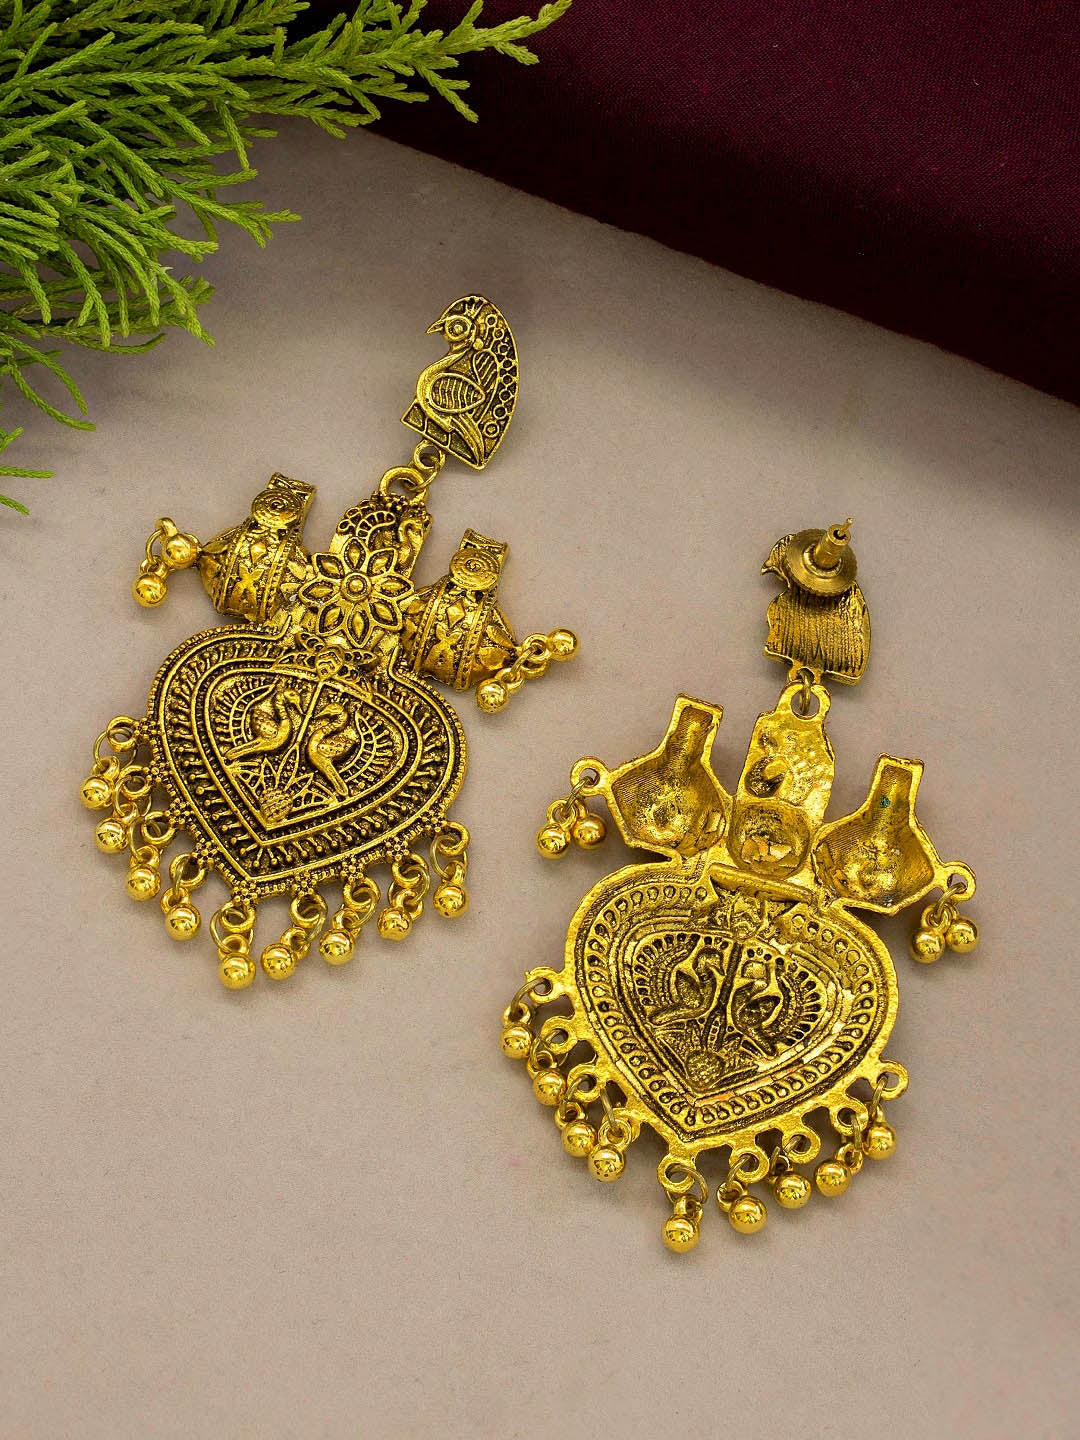 Jumkey Aykya Antique Gold Plated Peacock Design Pendant With Hanging Beads Long Necklace Set-JUMKEY AYKYA-JEWELLERY SET